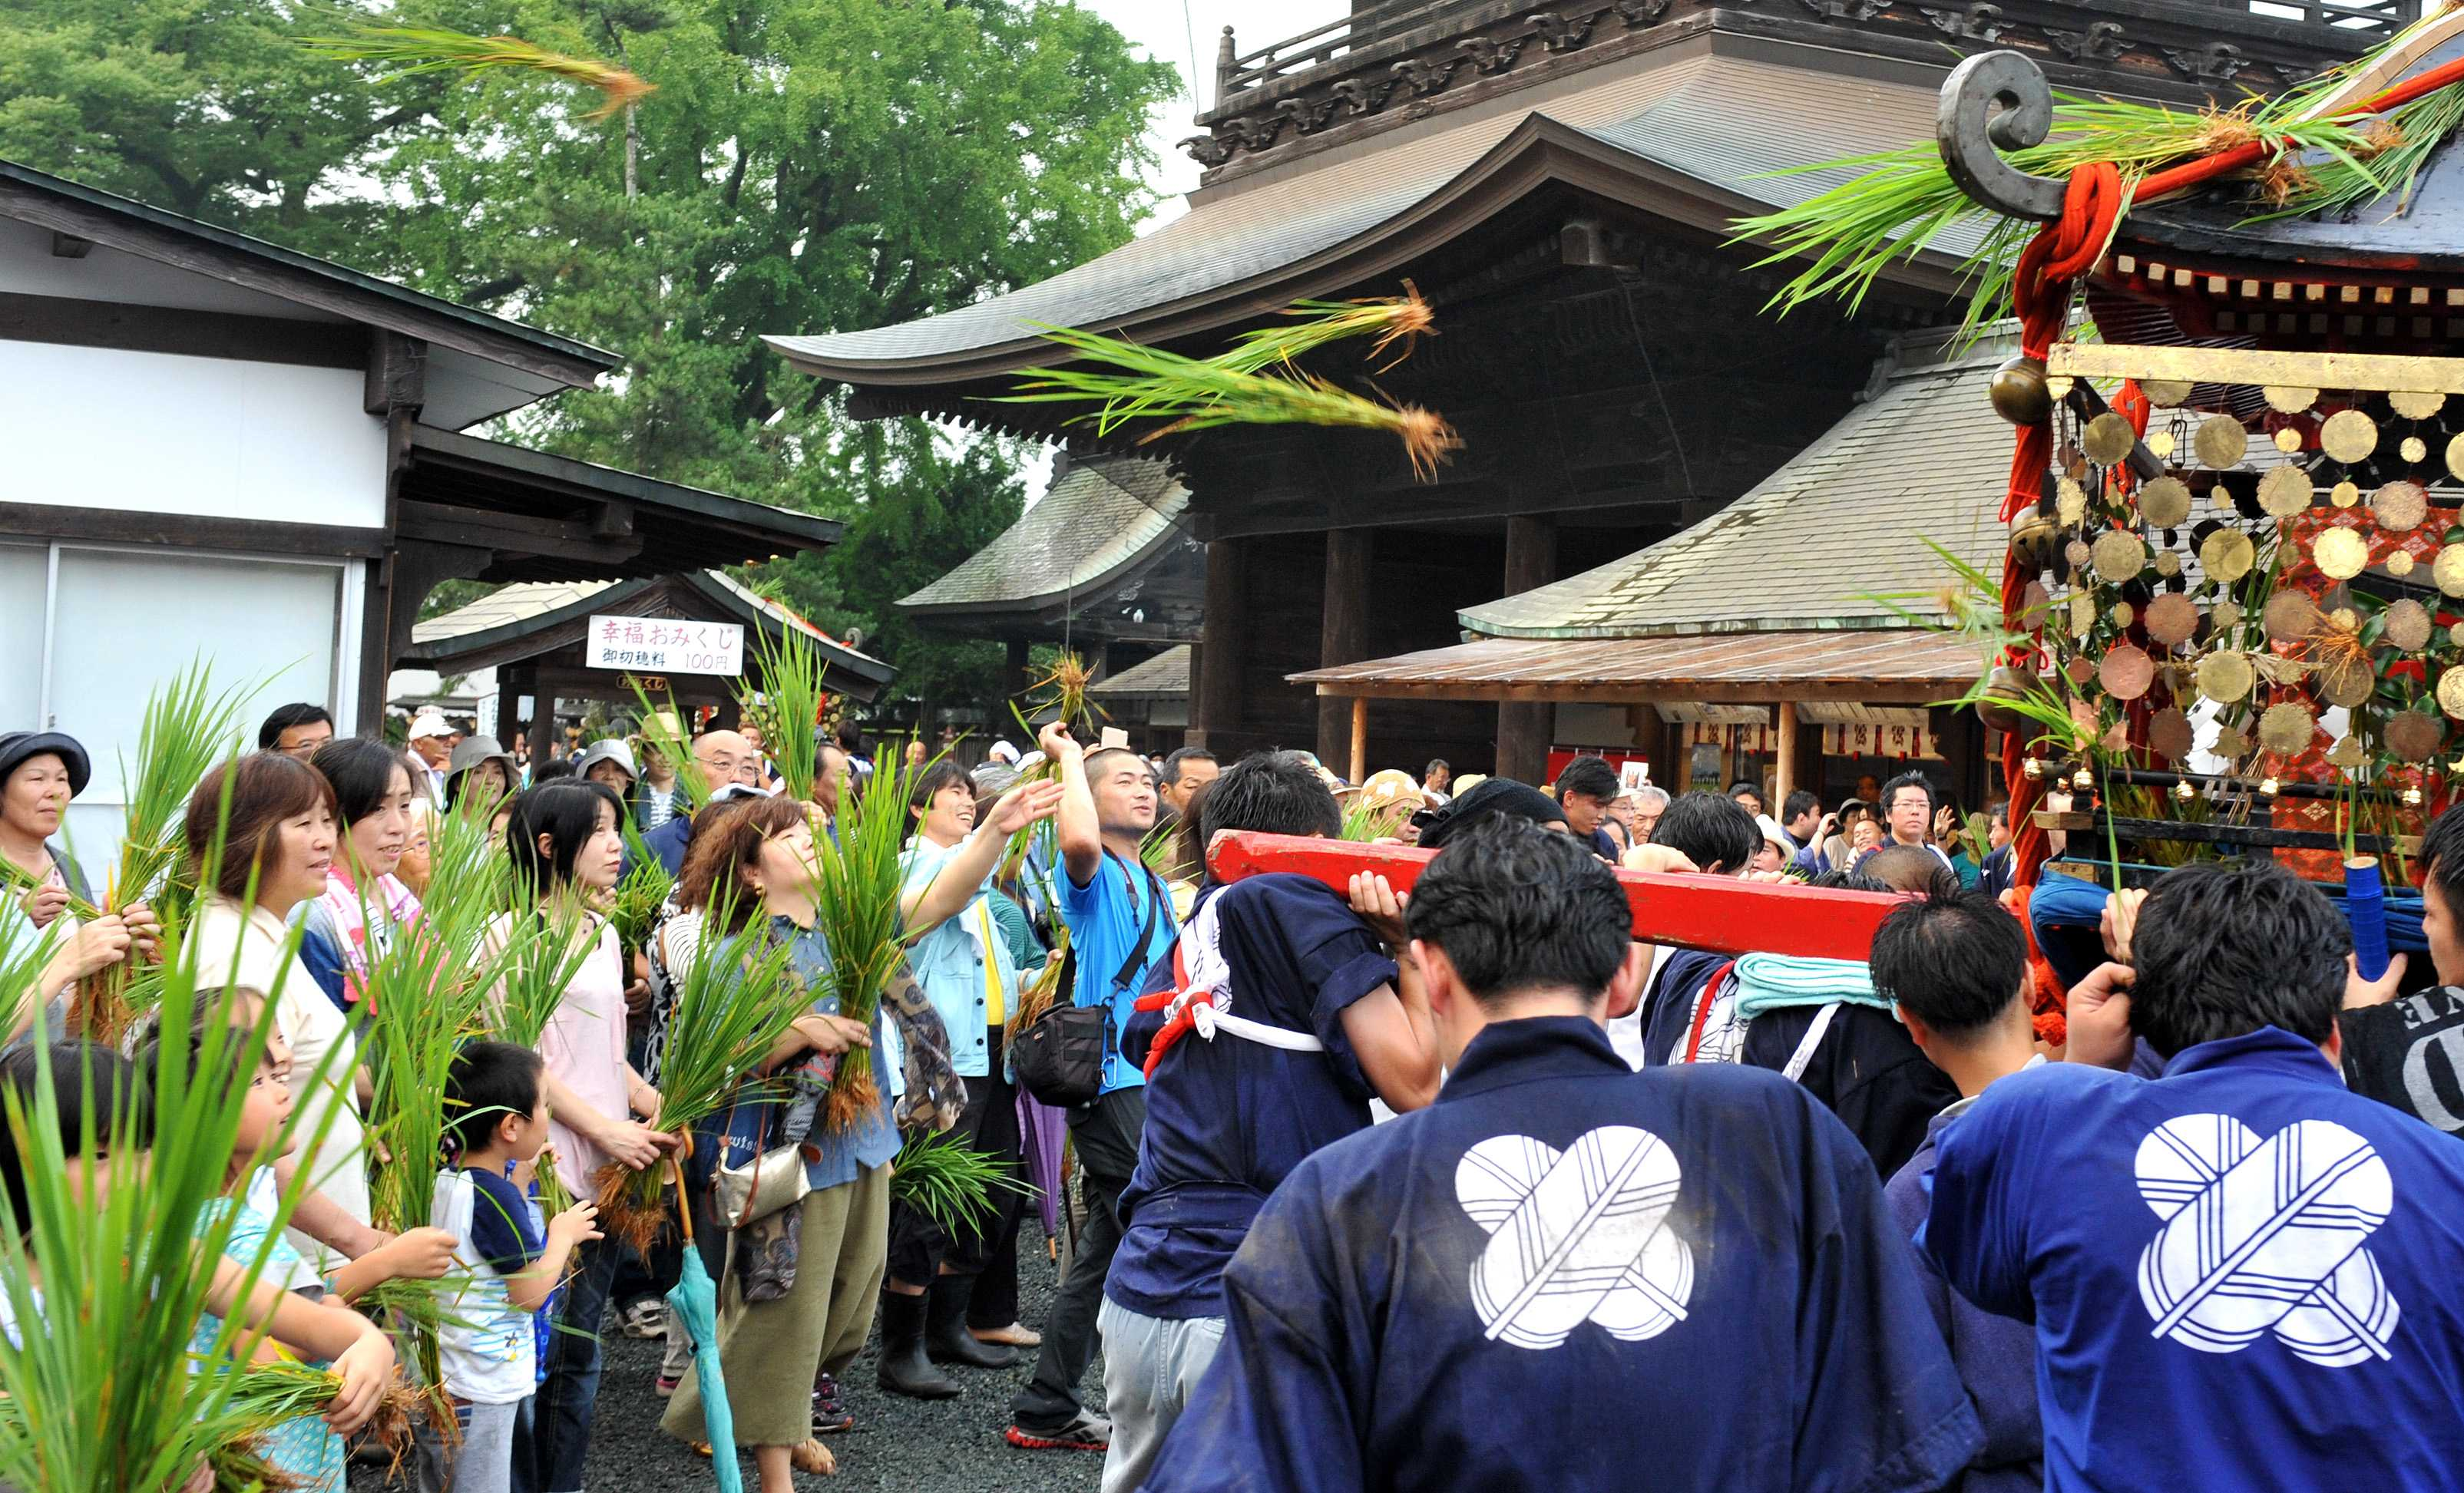 Attendants tossing rice stalks onto mikoshi. The more stalks stay on roofs, the better the harvest will be, according to tradition